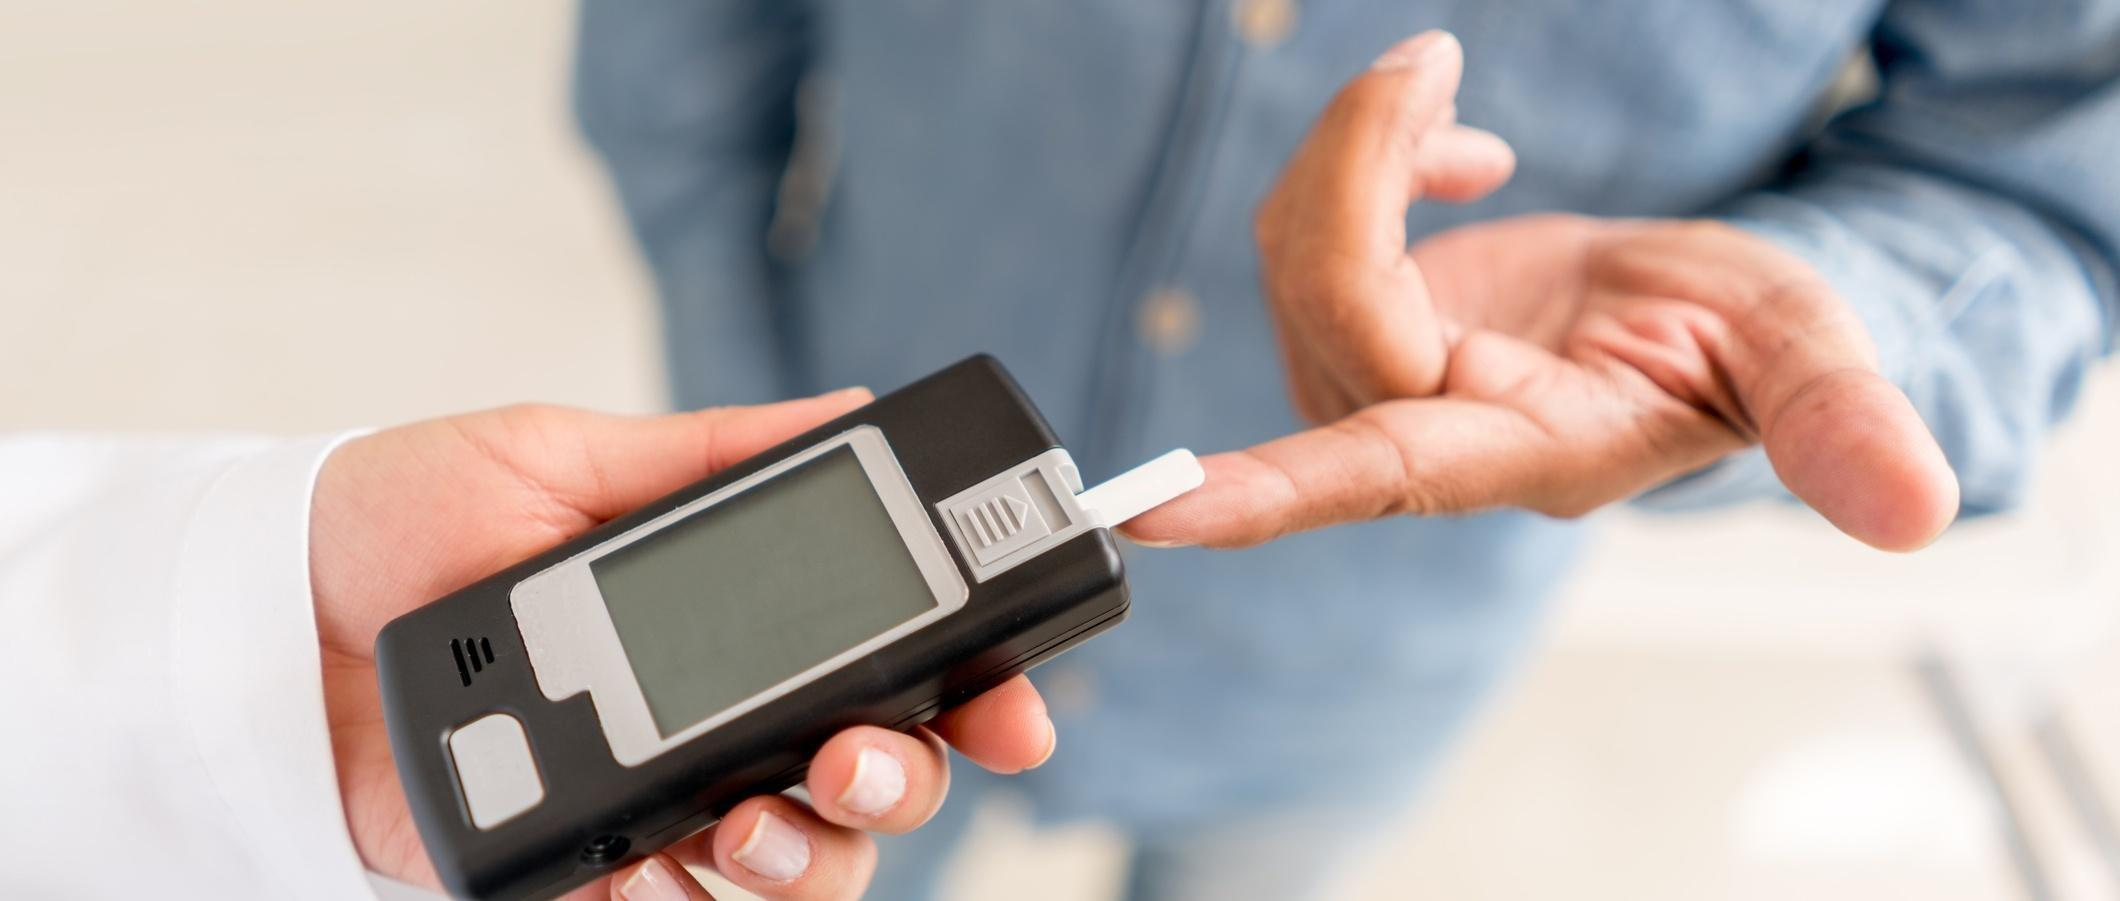 The Future Of Diabetes Management And Treatment